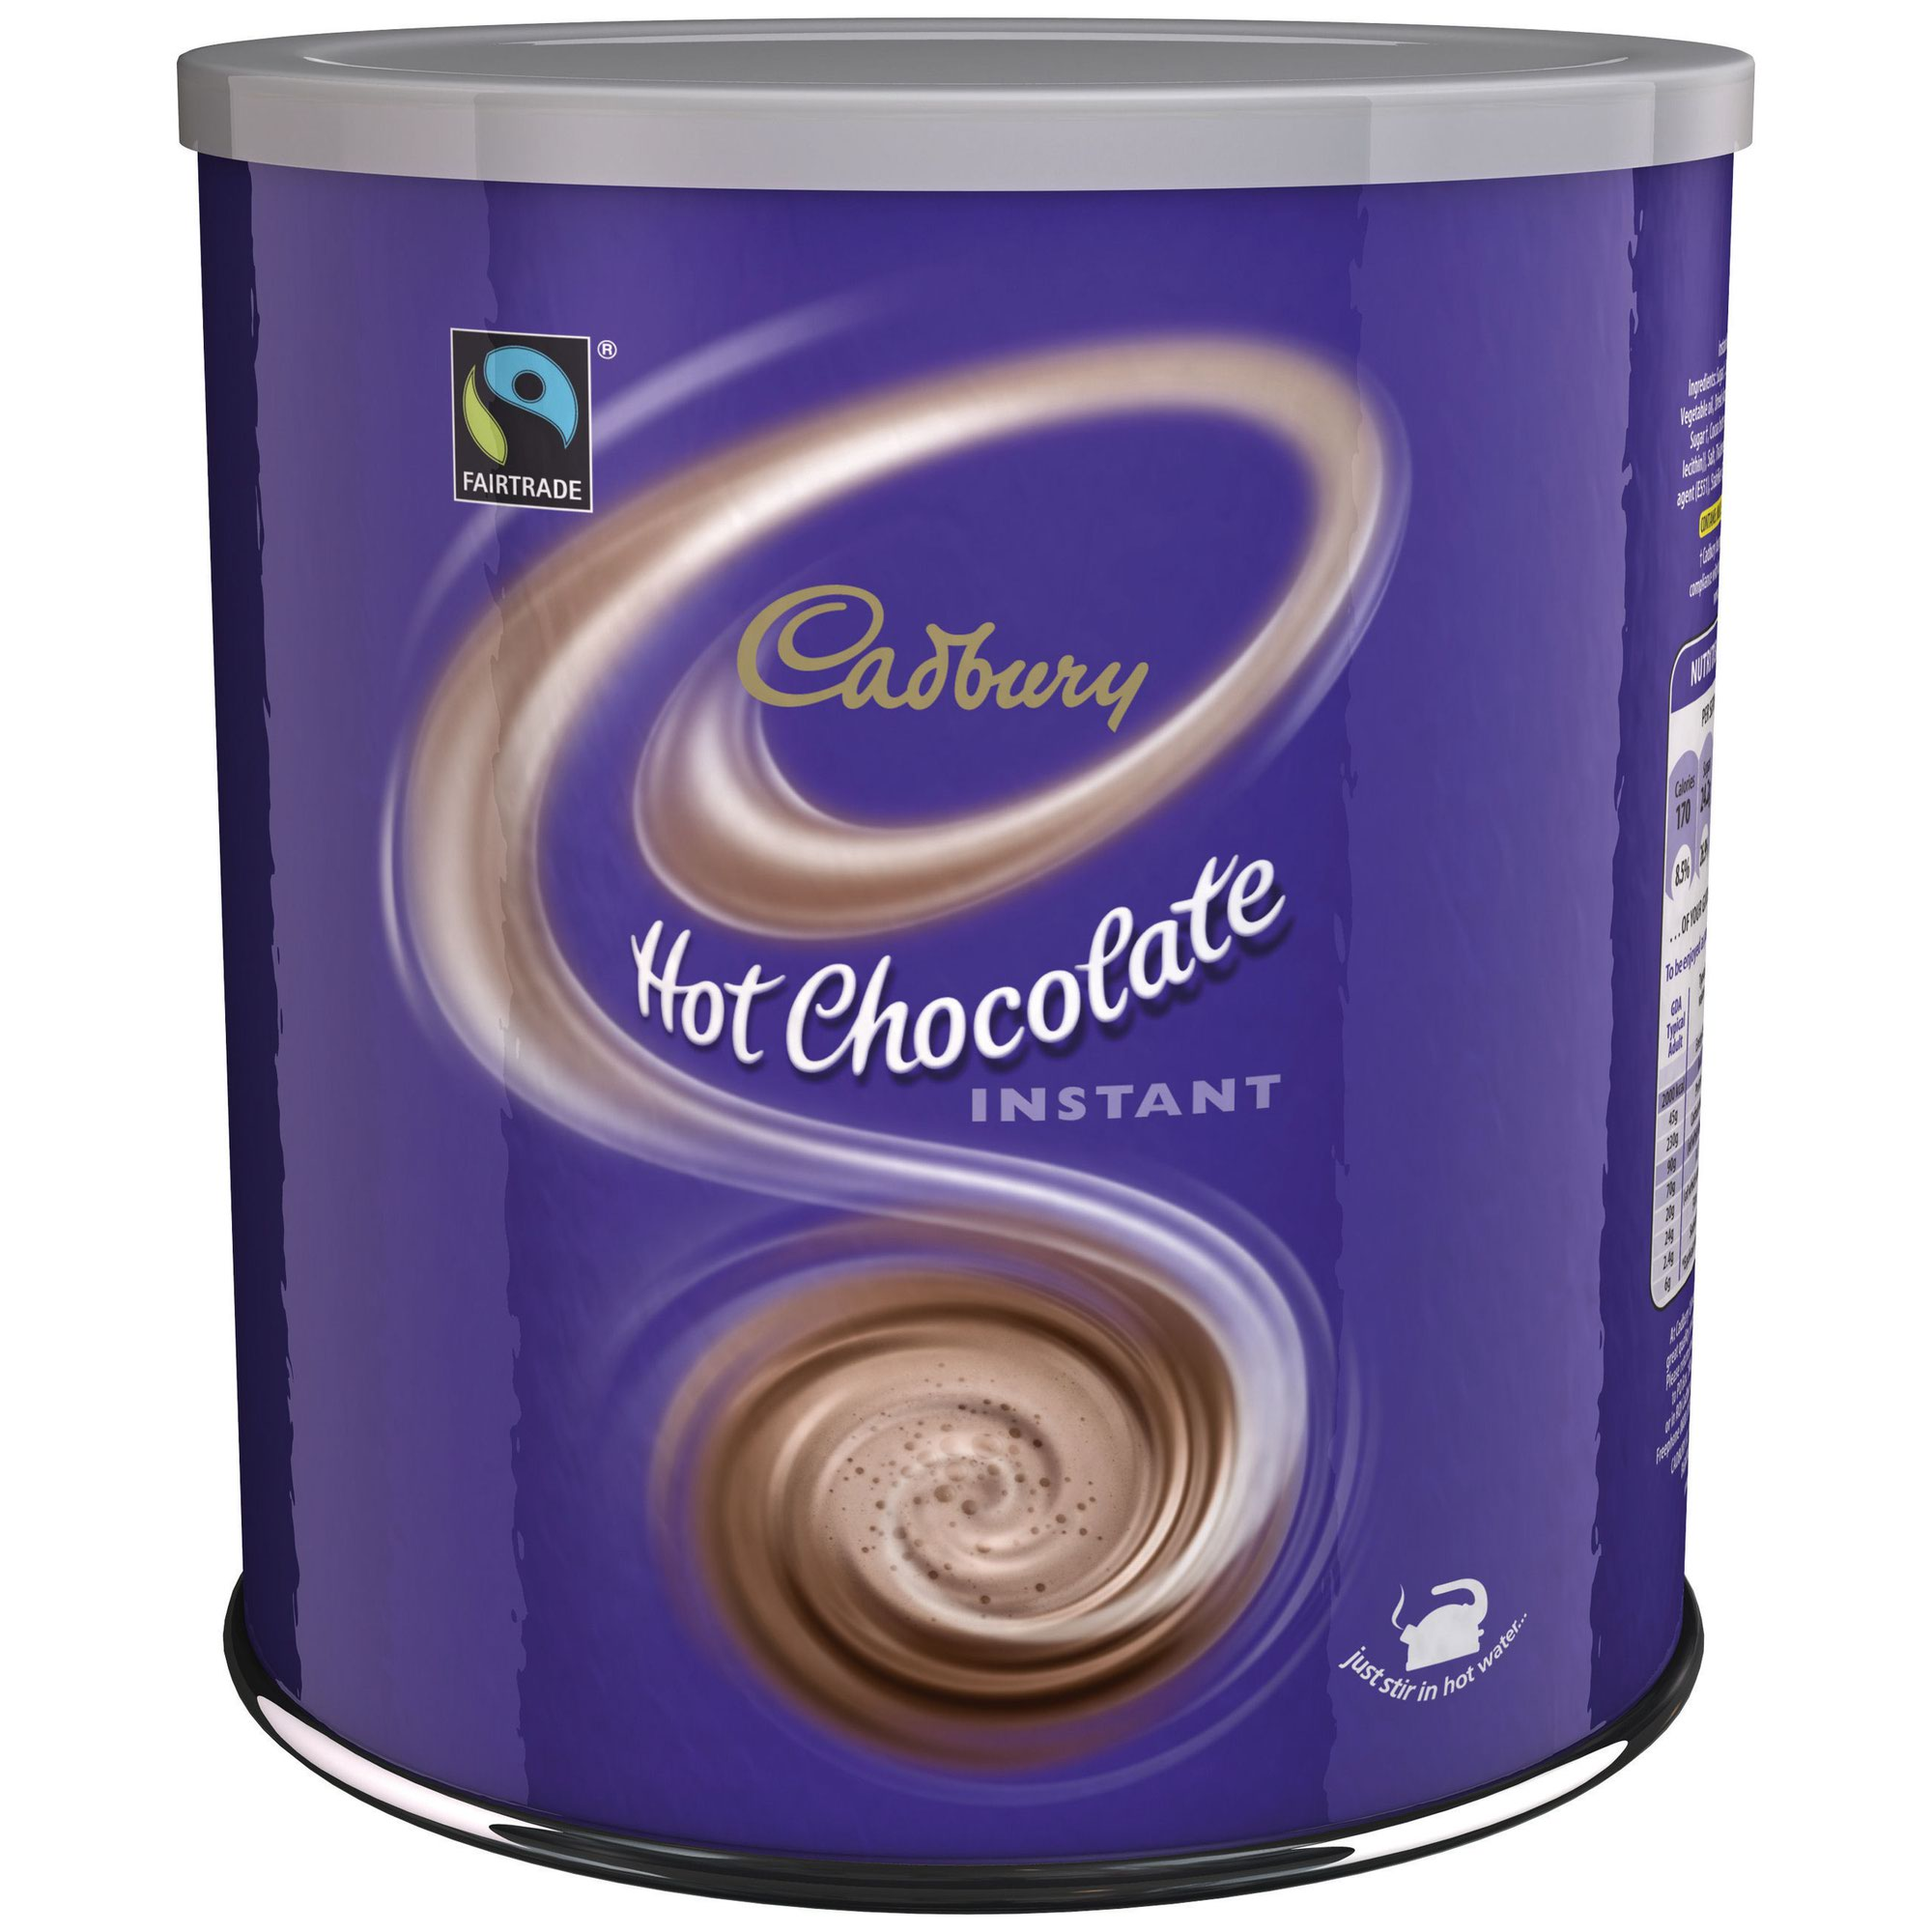 Cadbury Chocolate Break Tin 2kg